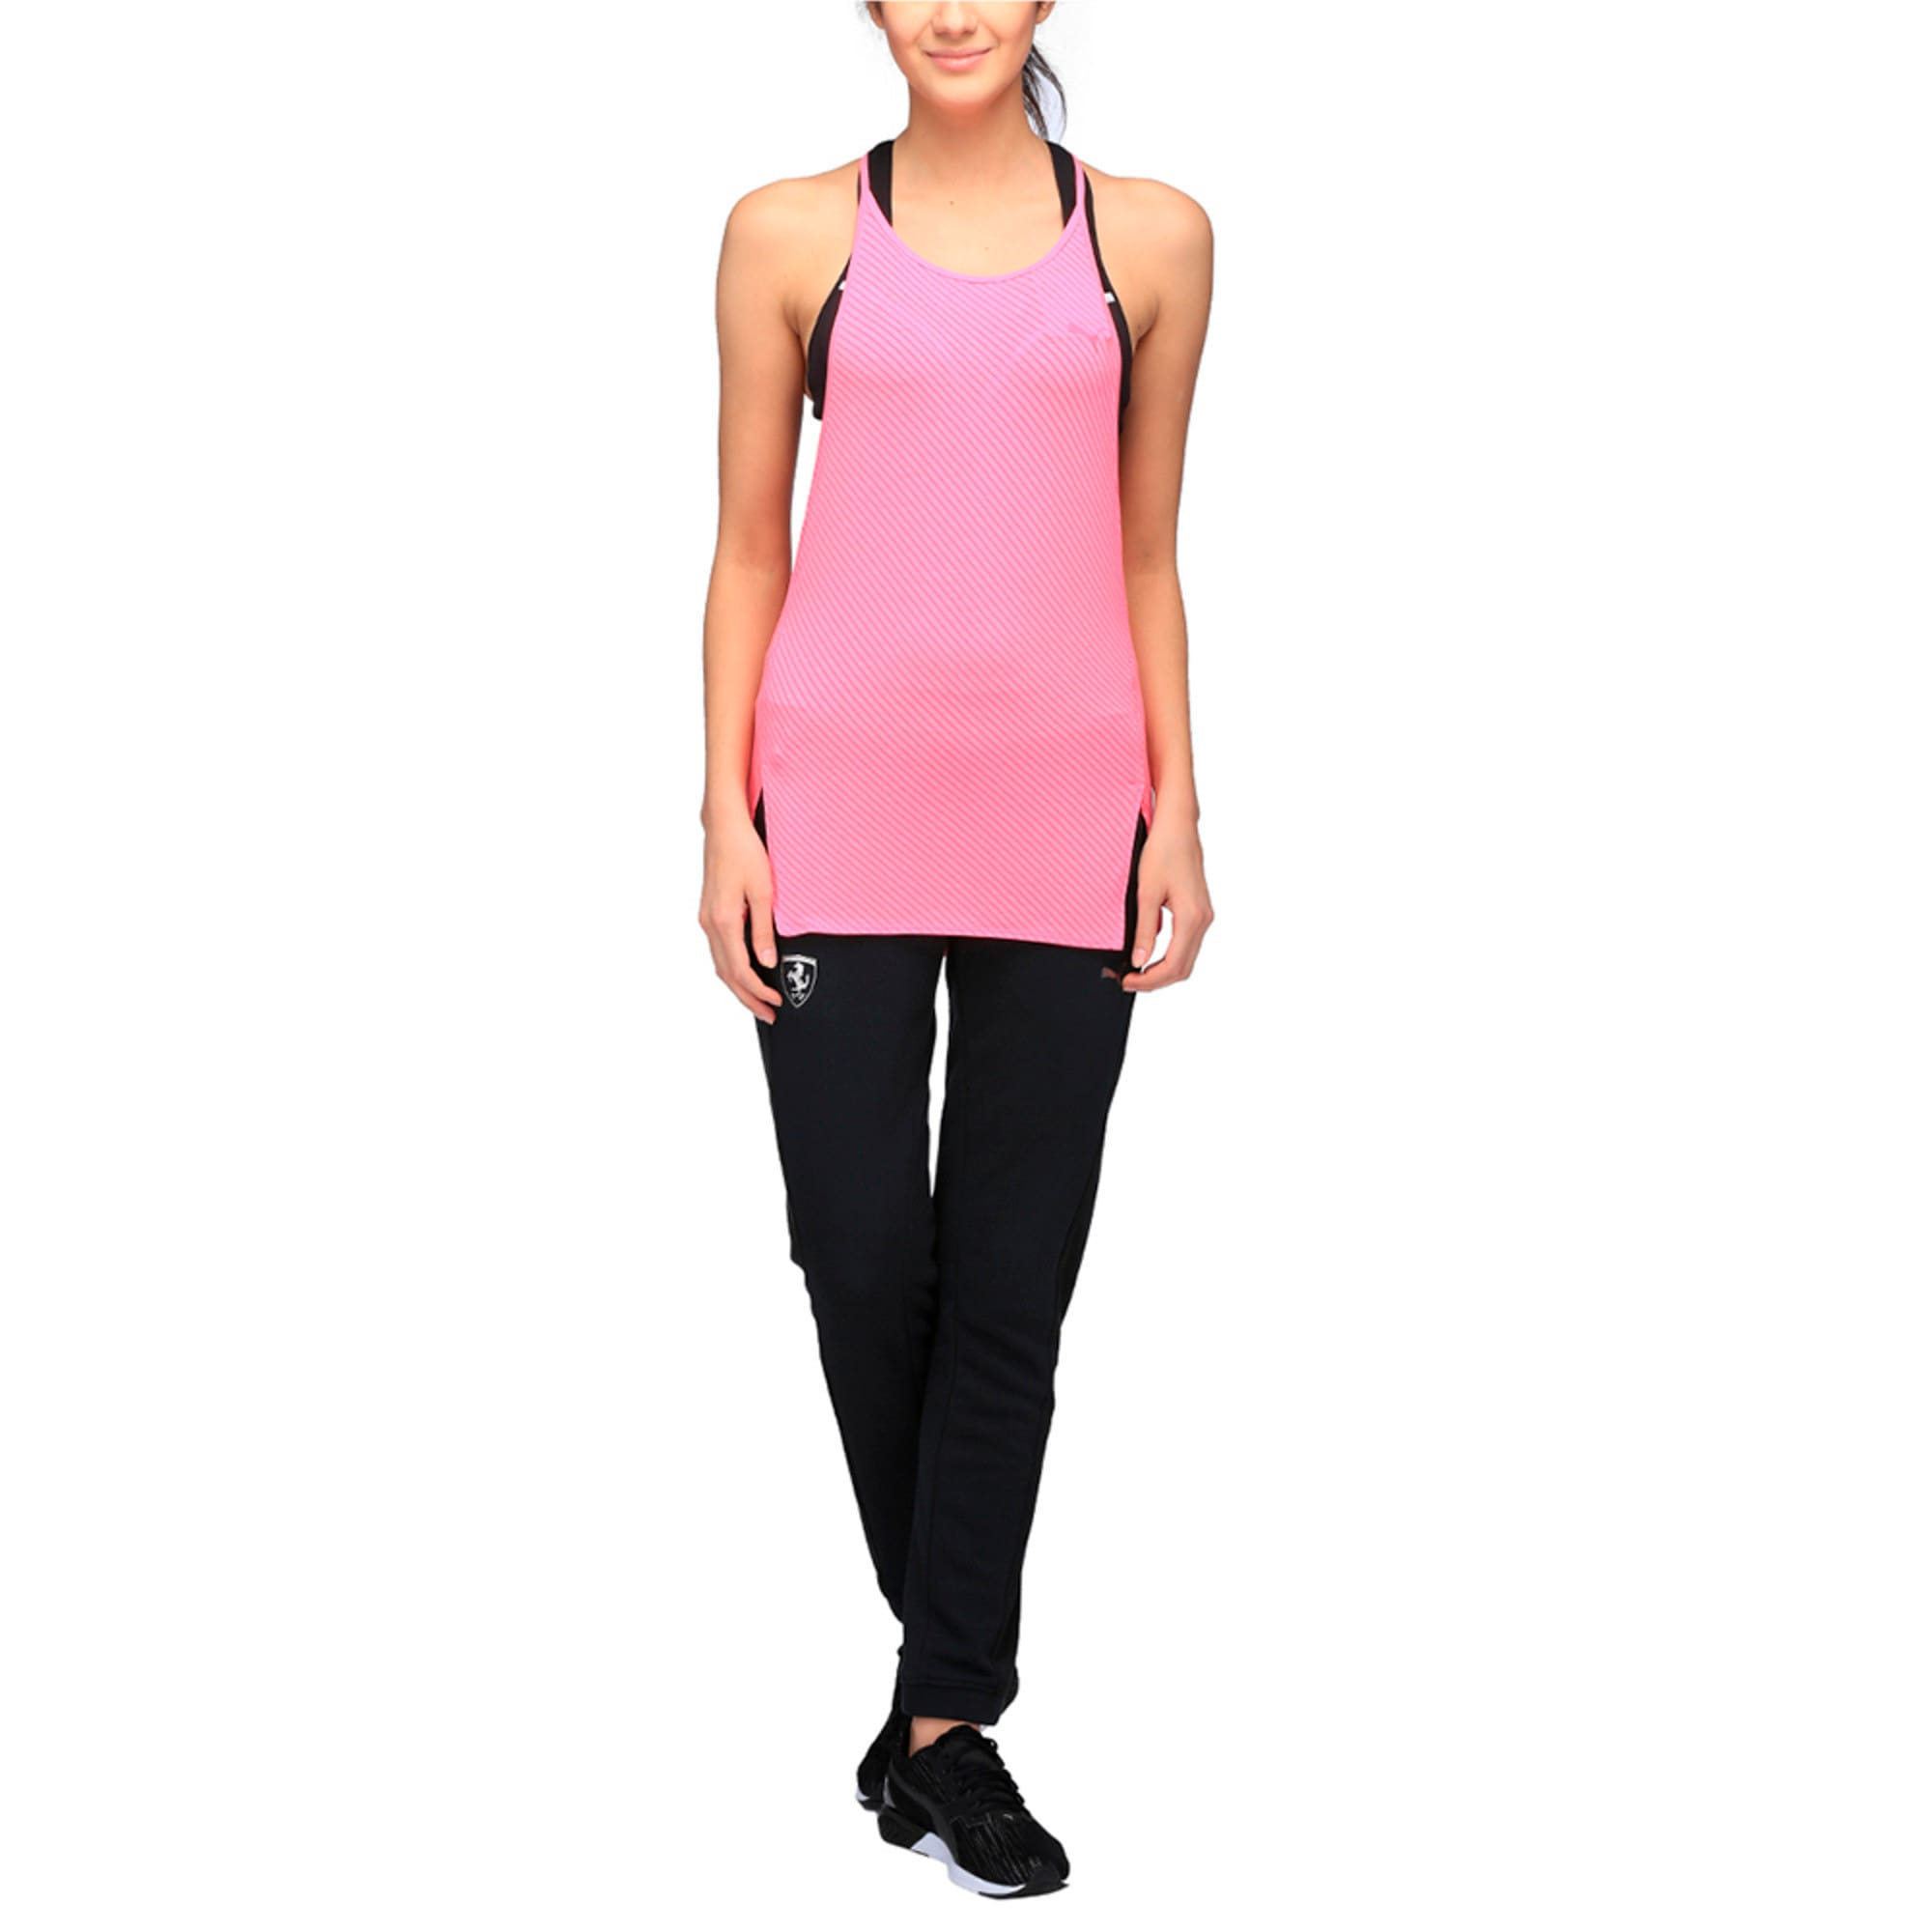 Thumbnail 3 of Active Training Women's Dancer Draped Tank Top, knockout pink heather-stripe, medium-IND